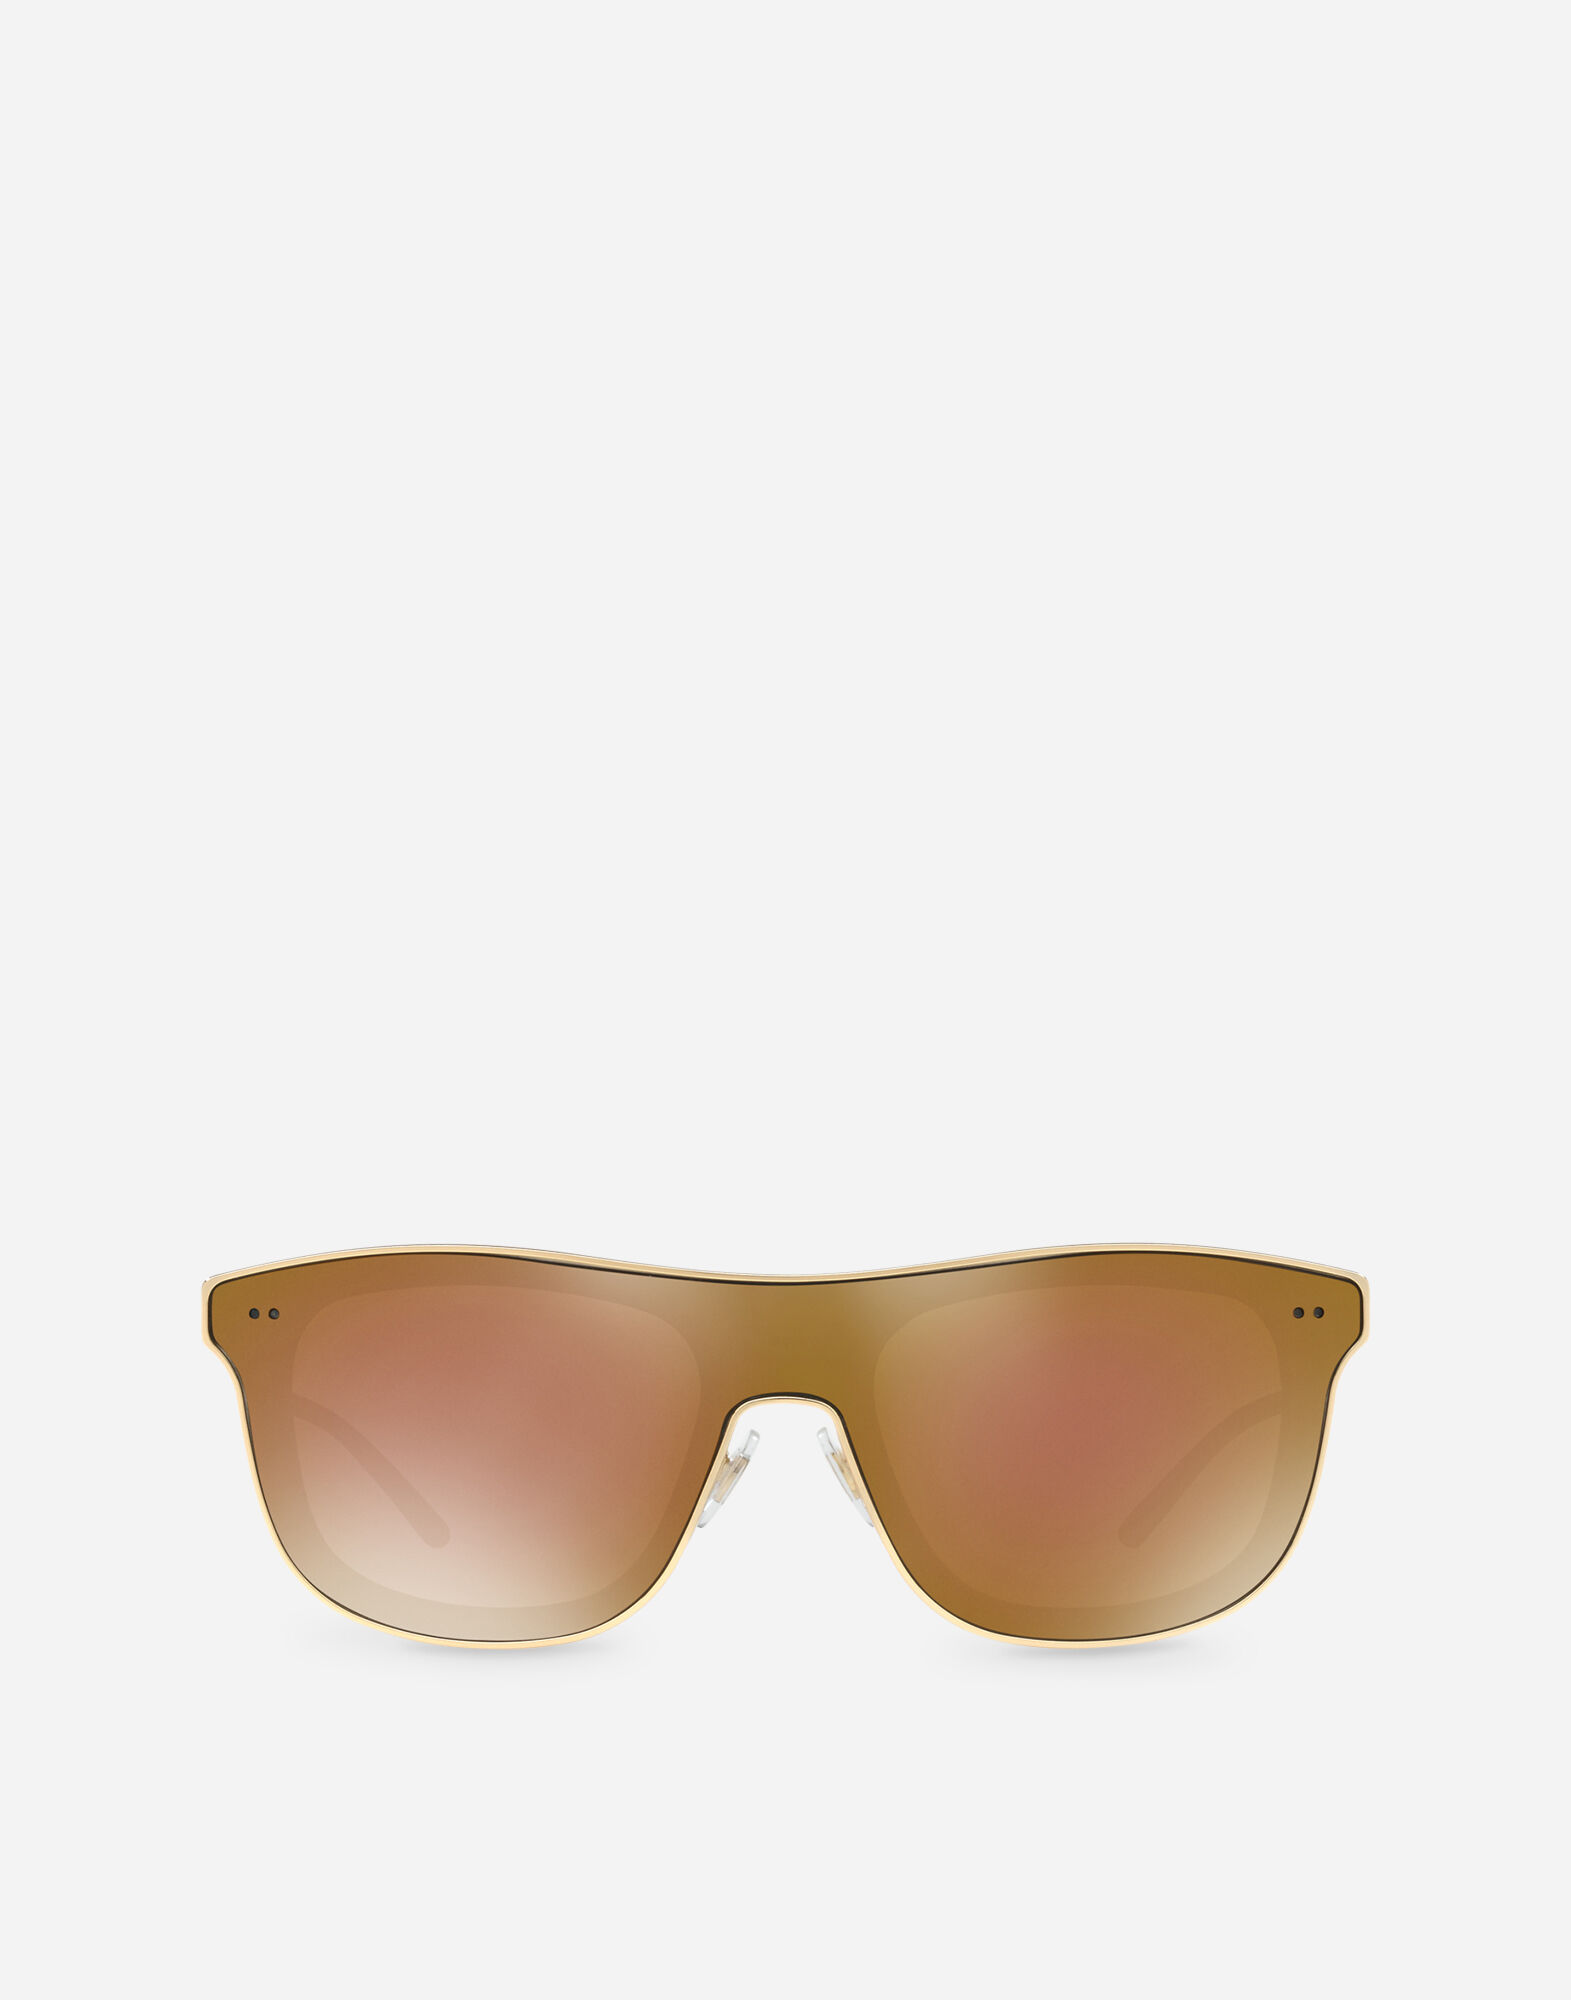 Dolce&Gabbana SQUARE METAL SUNGLASSES